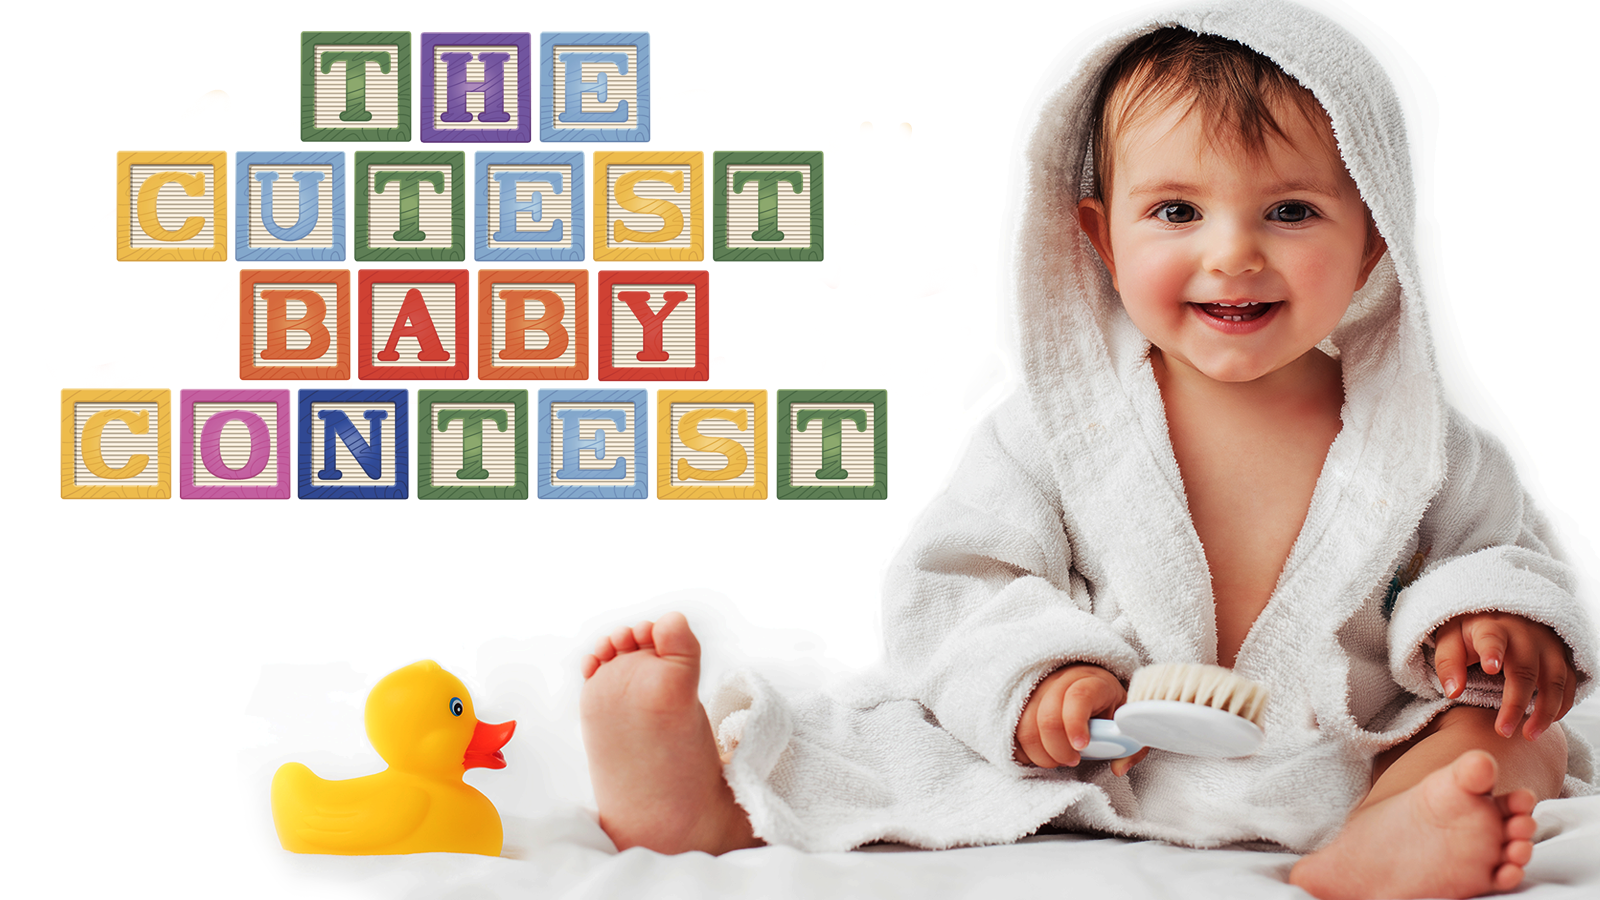 CutestBaby16x9_1550507127343.png